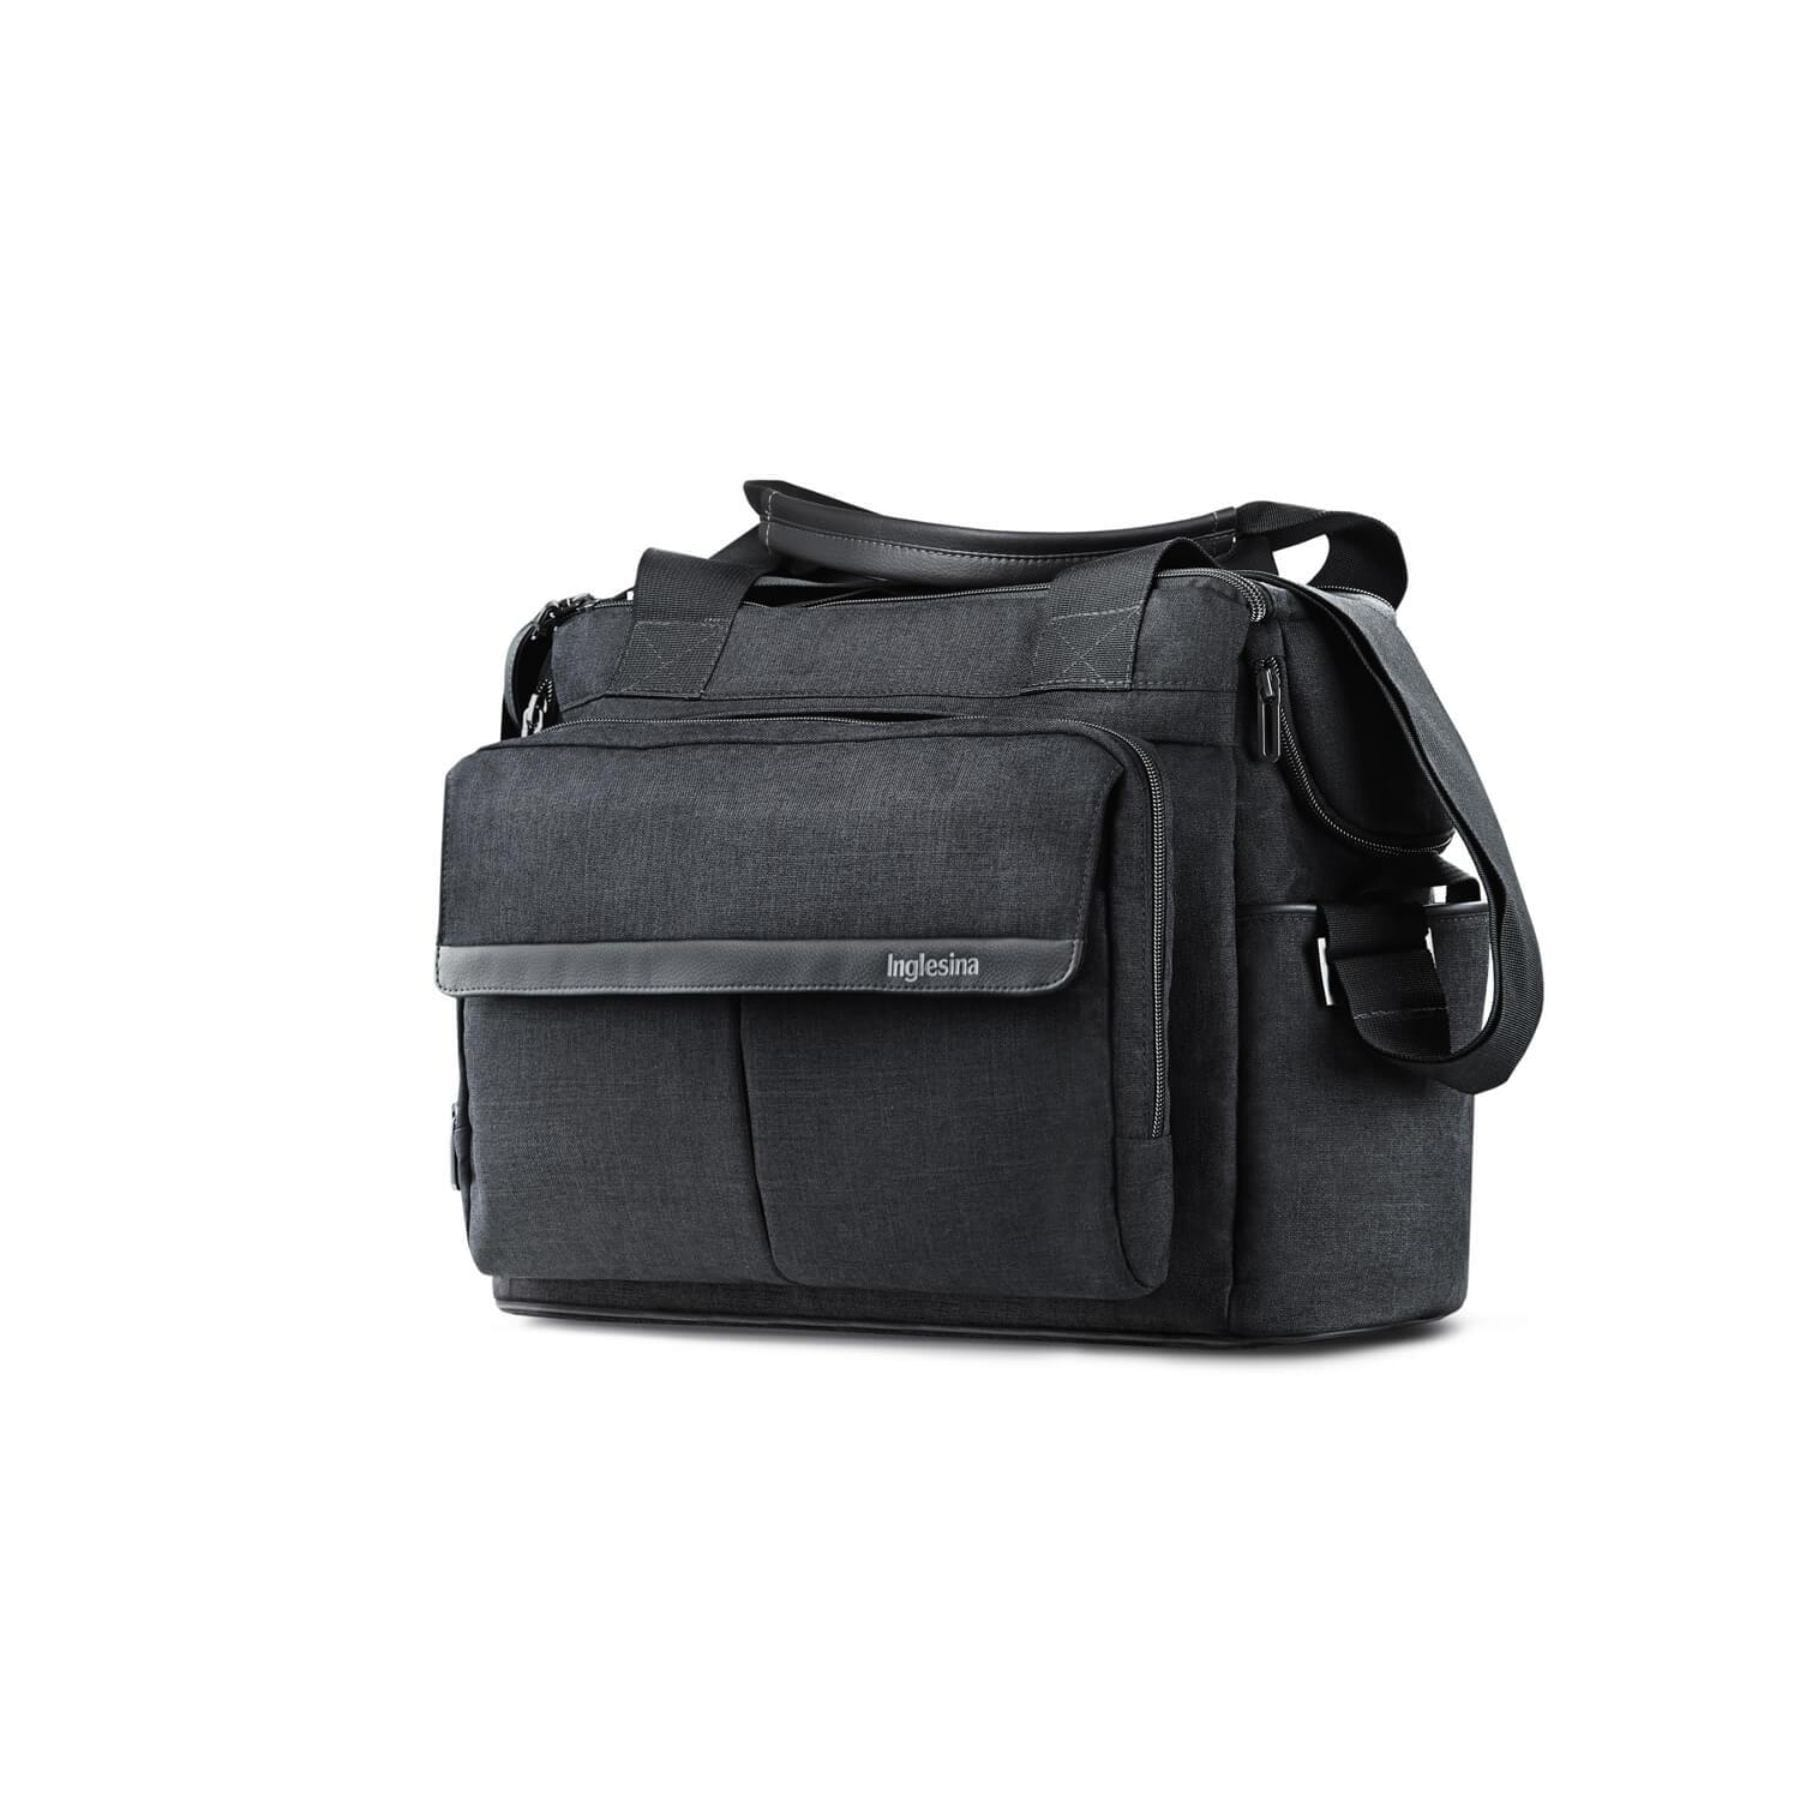 Inglesina Dual Bag for Aptica - Mystic Black